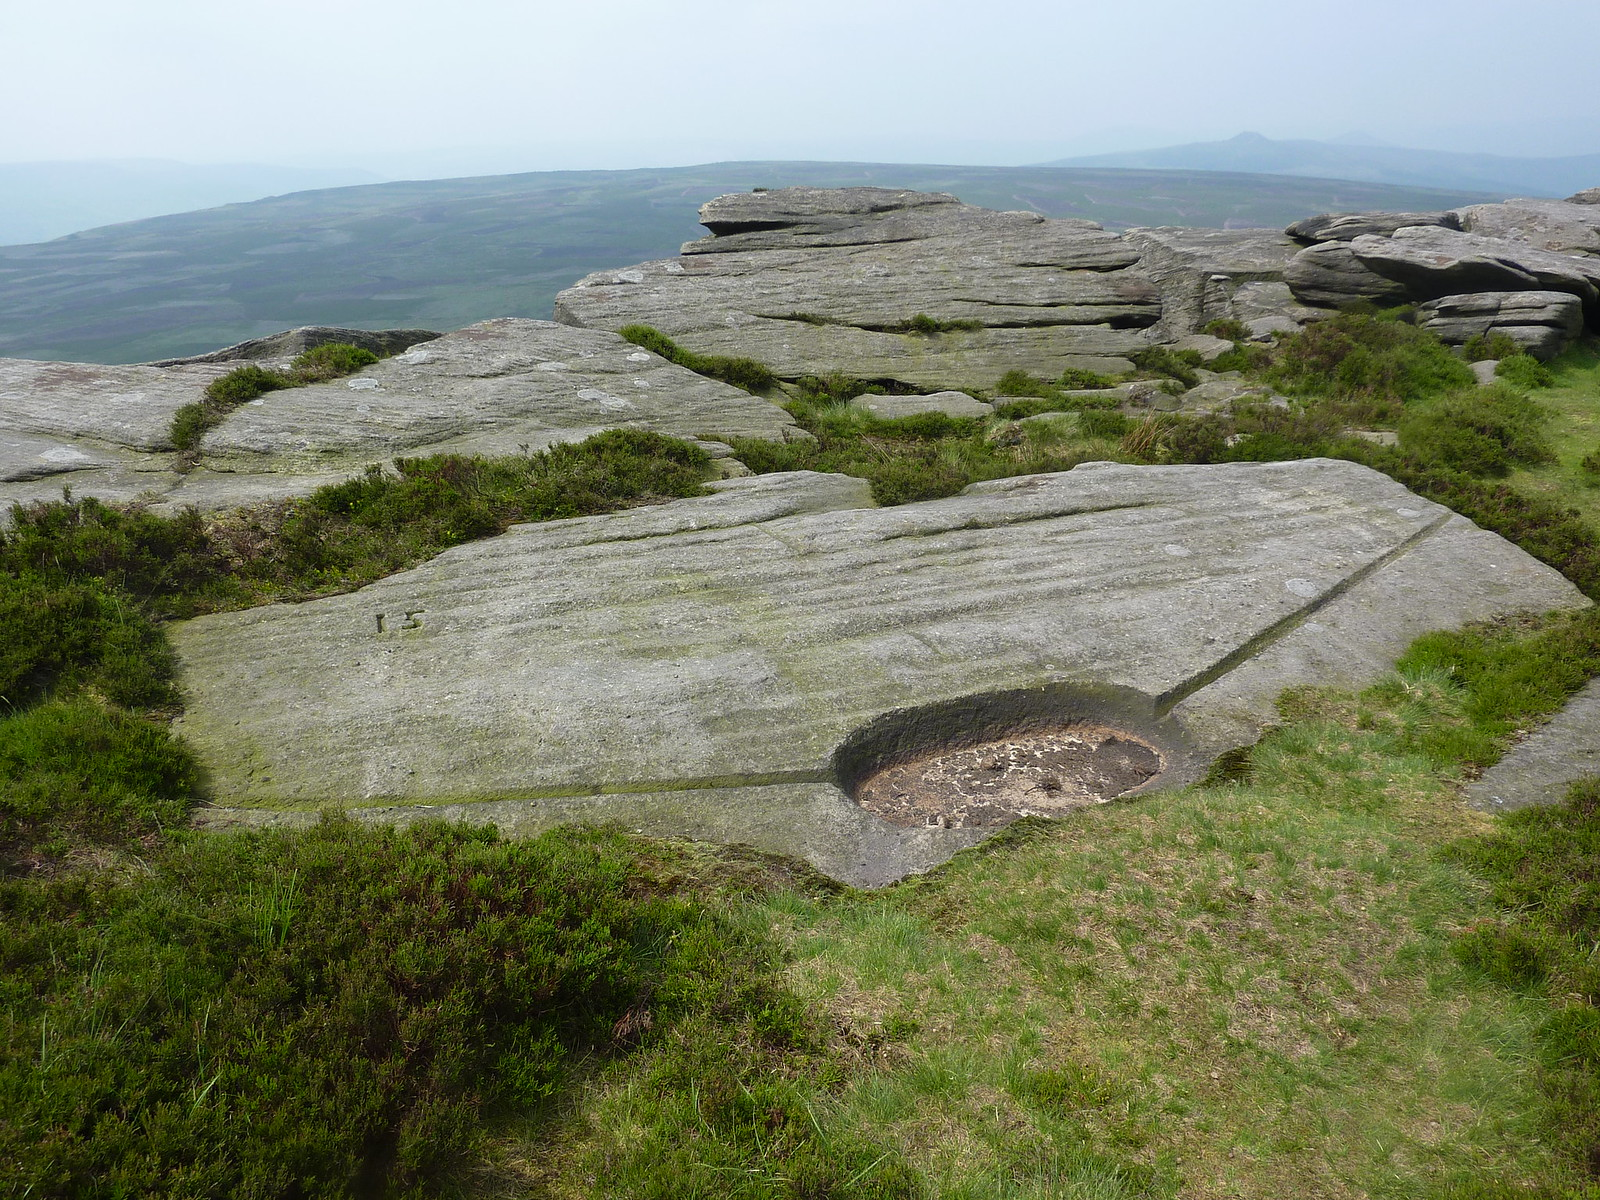 Gritstone Rocks on Stanage Edge SWC Walk 266 - Sheffield to Bamford (via Burbage Rocks and Stanage Edge) or to Moscar Lodge